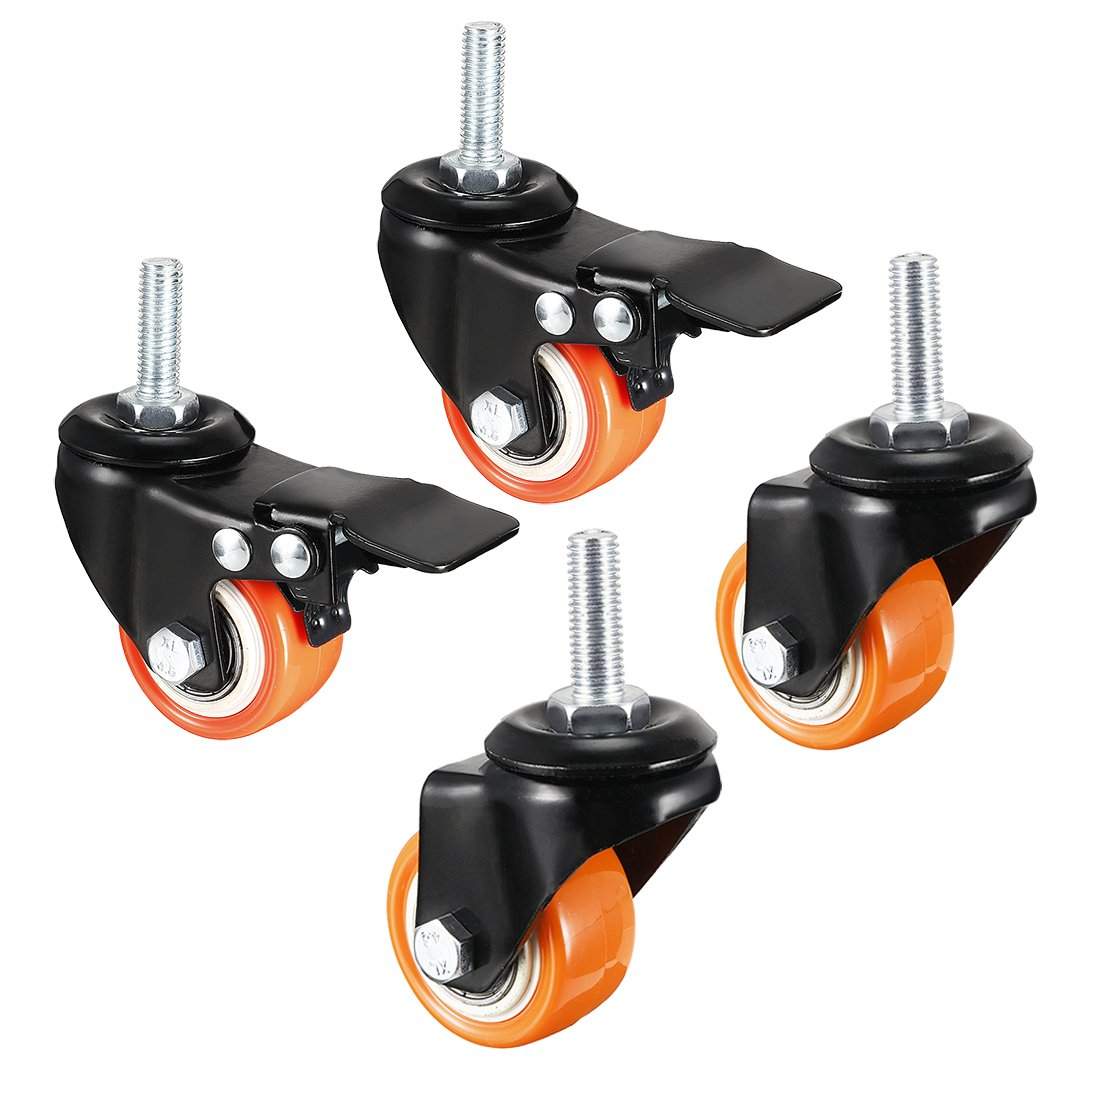 uxcell 1.5 Inch Swivel Caster Wheels PU 360 Degree Threaded Stem Caster Wheel M10 x 25mm 330lb Total Load Capacity Pack of 4 2 Pcs with Brake 2 Pcs No Brake